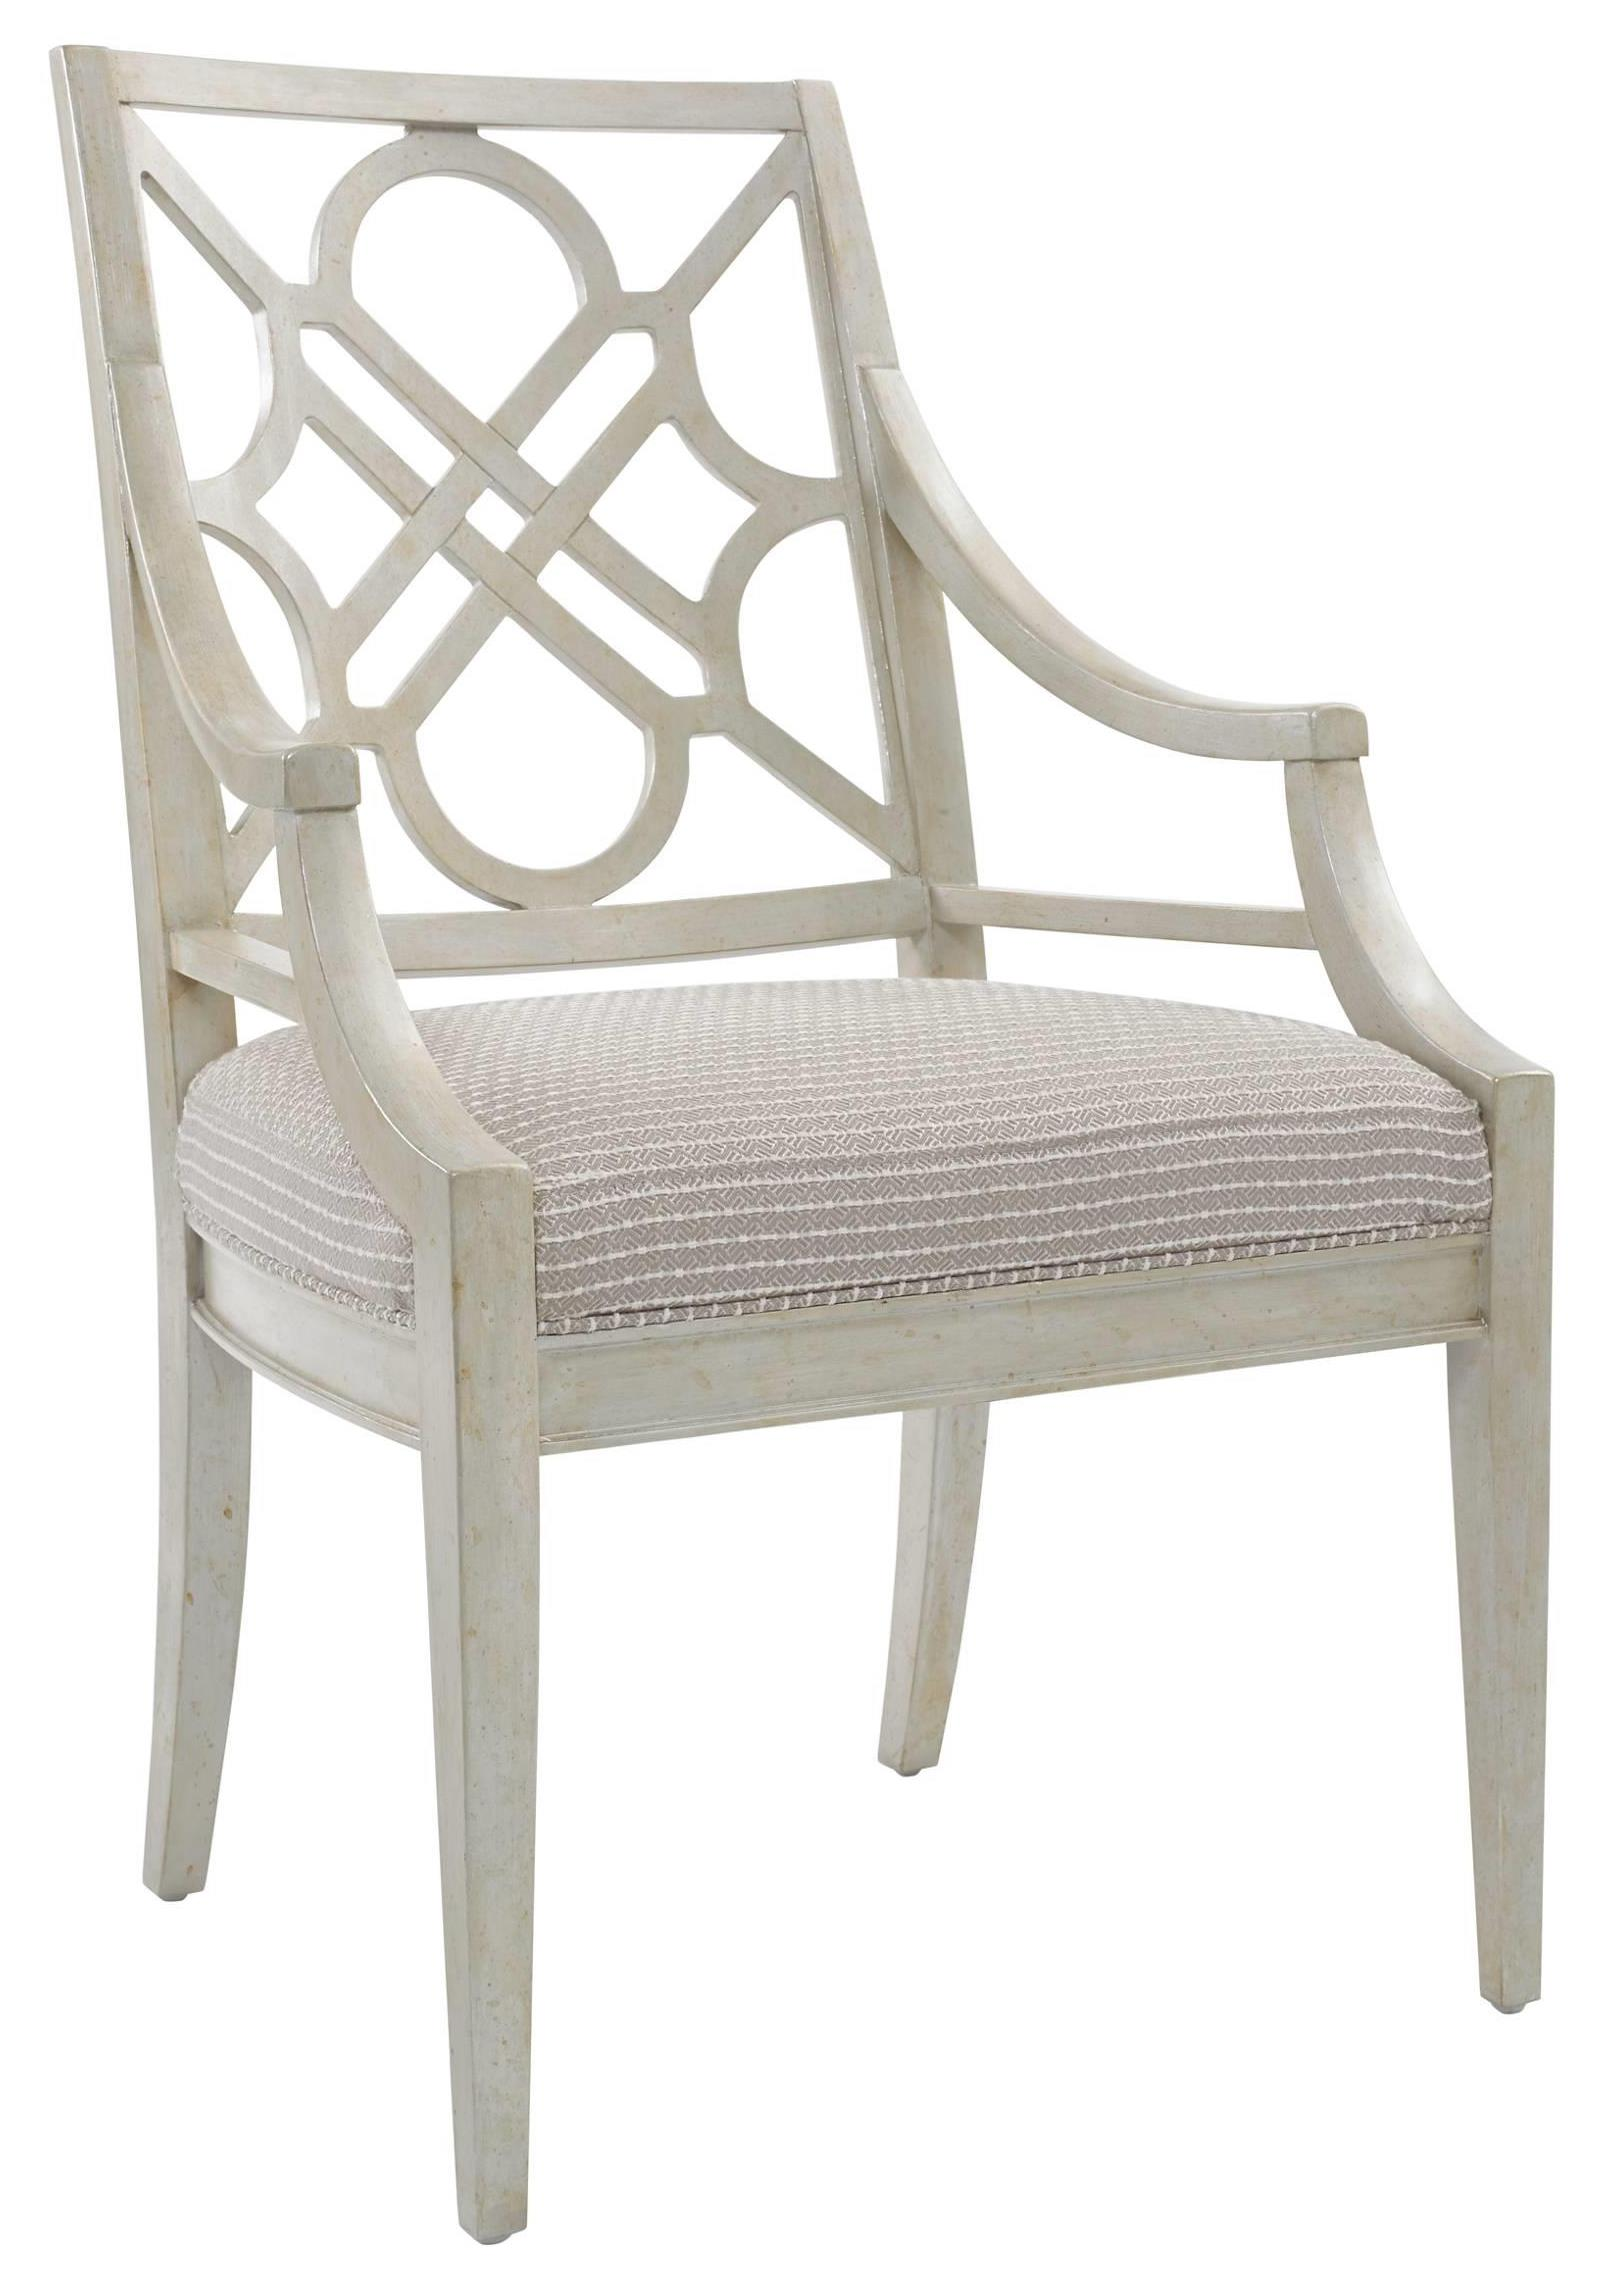 Stanley Furniture Fairlane Wood Arm Chair - Item Number: 417-21-70